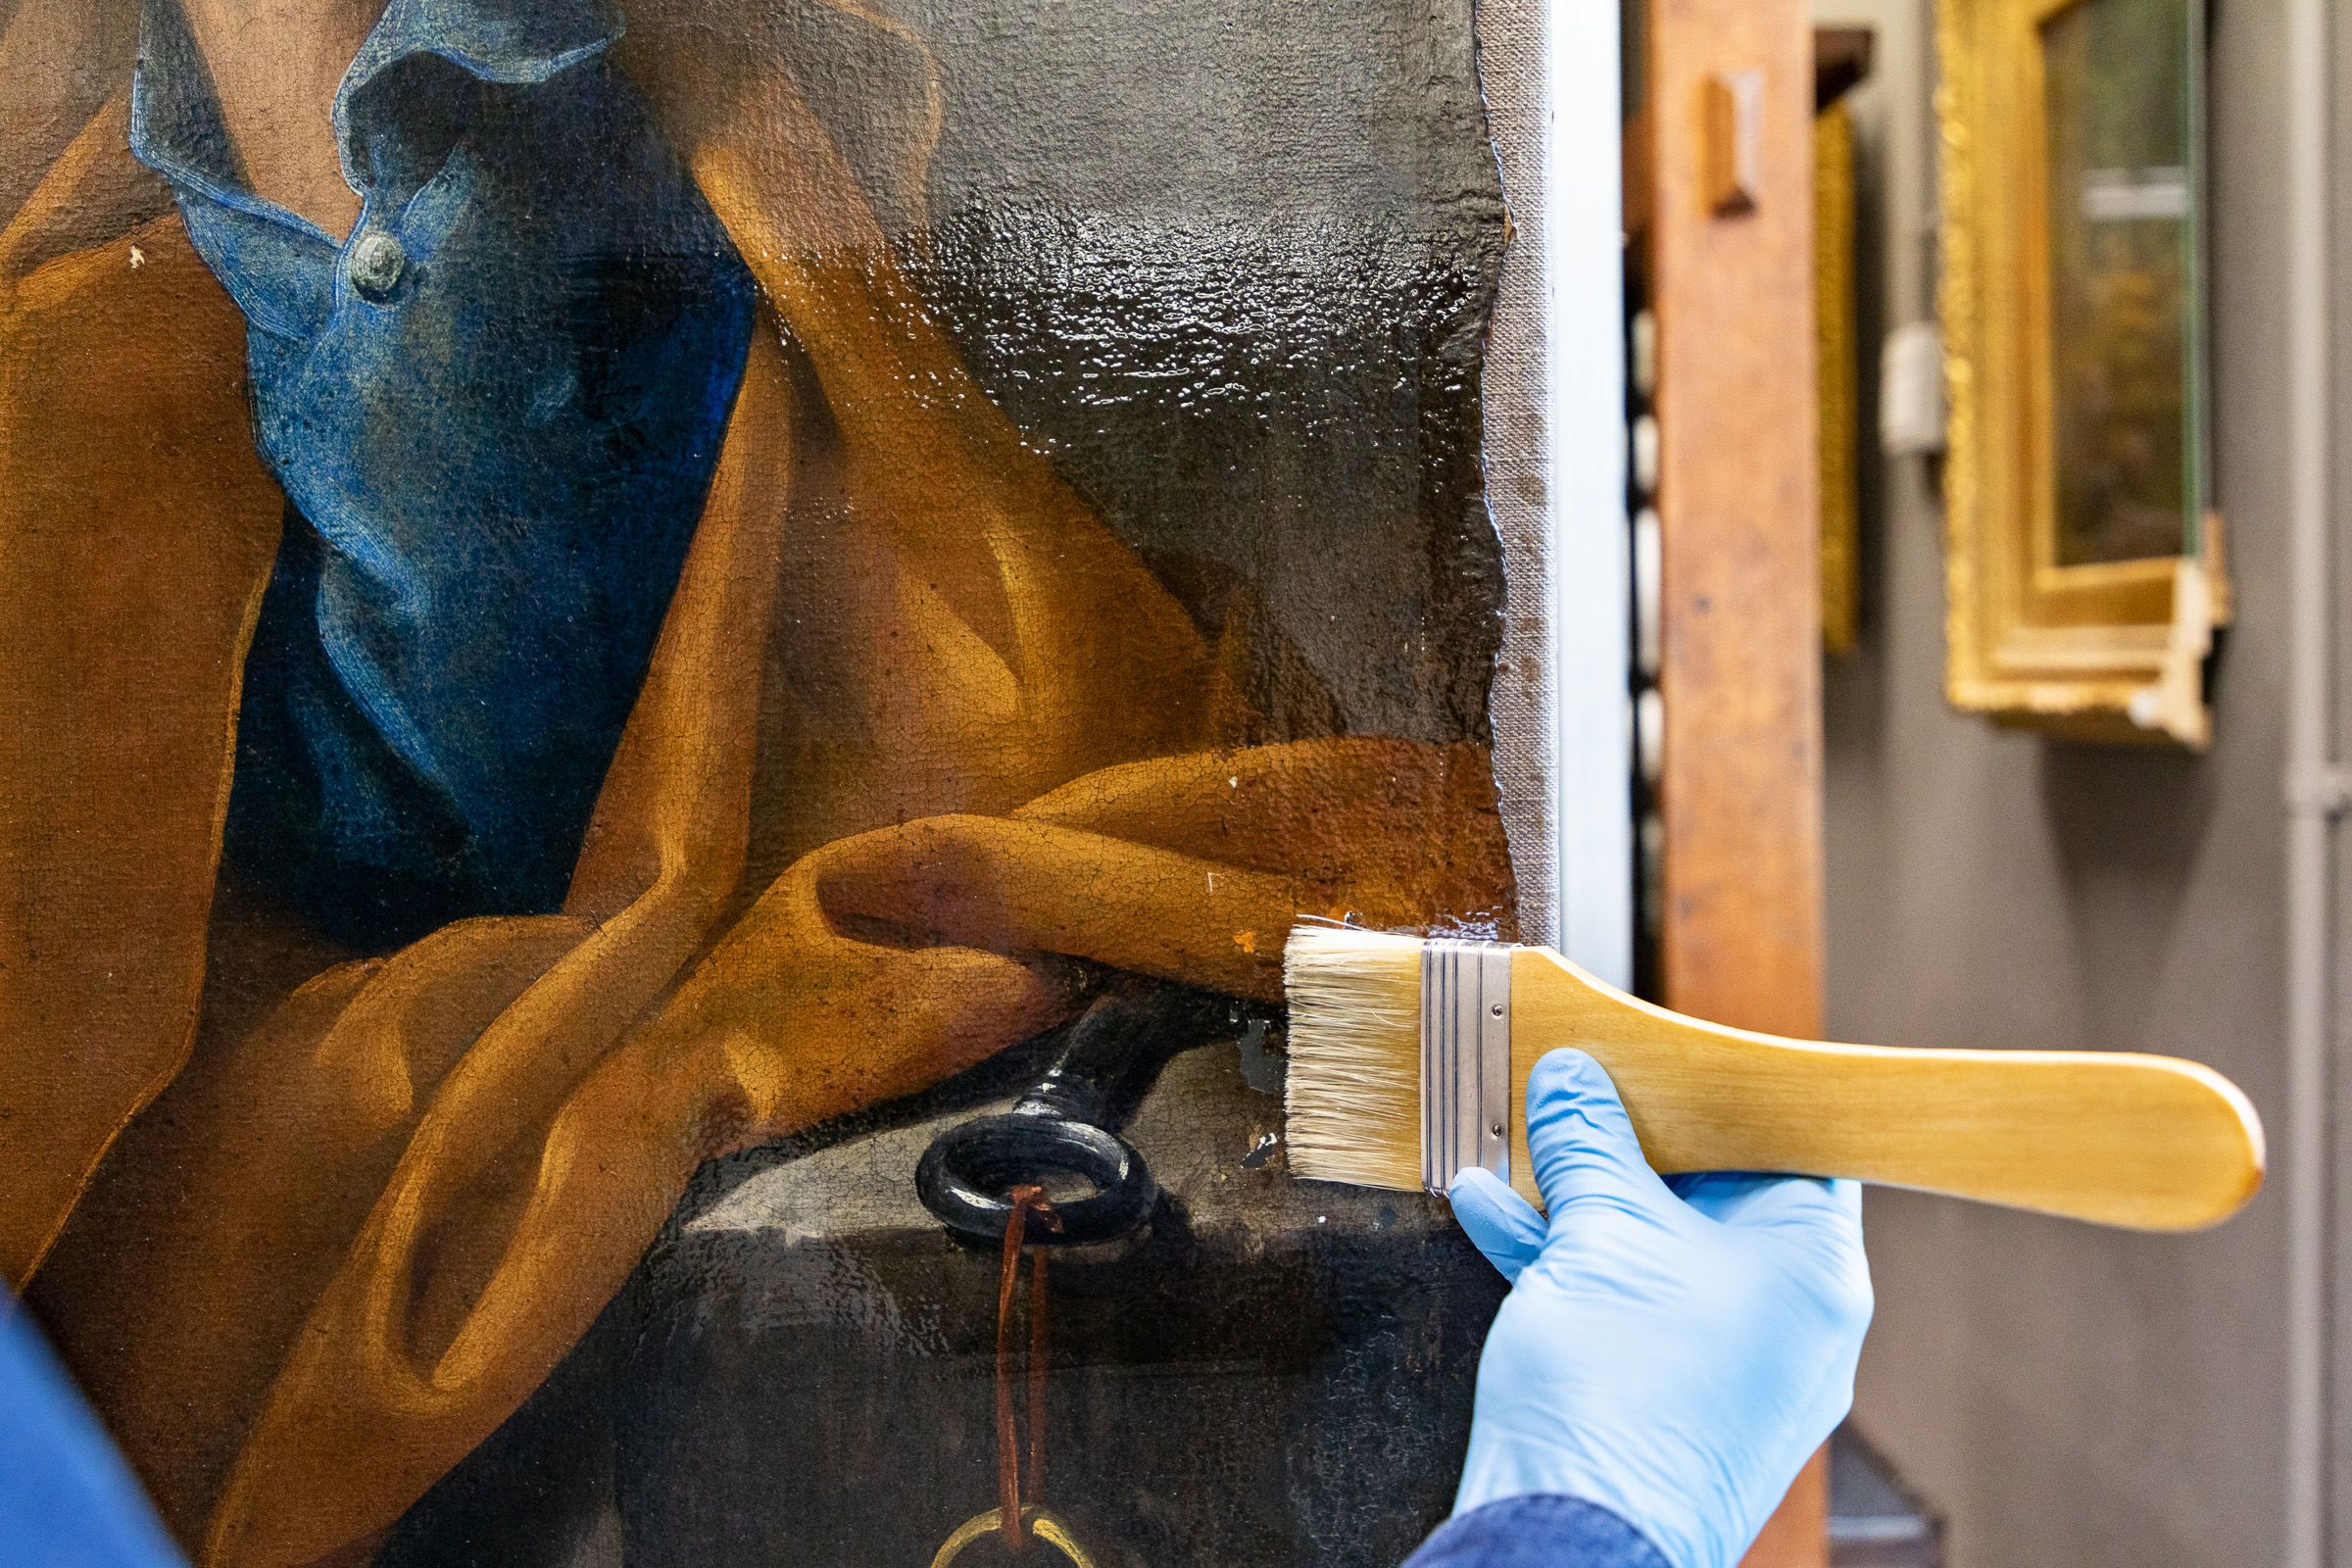 art resin is applied to a painting with a wide brush by a gloved hand